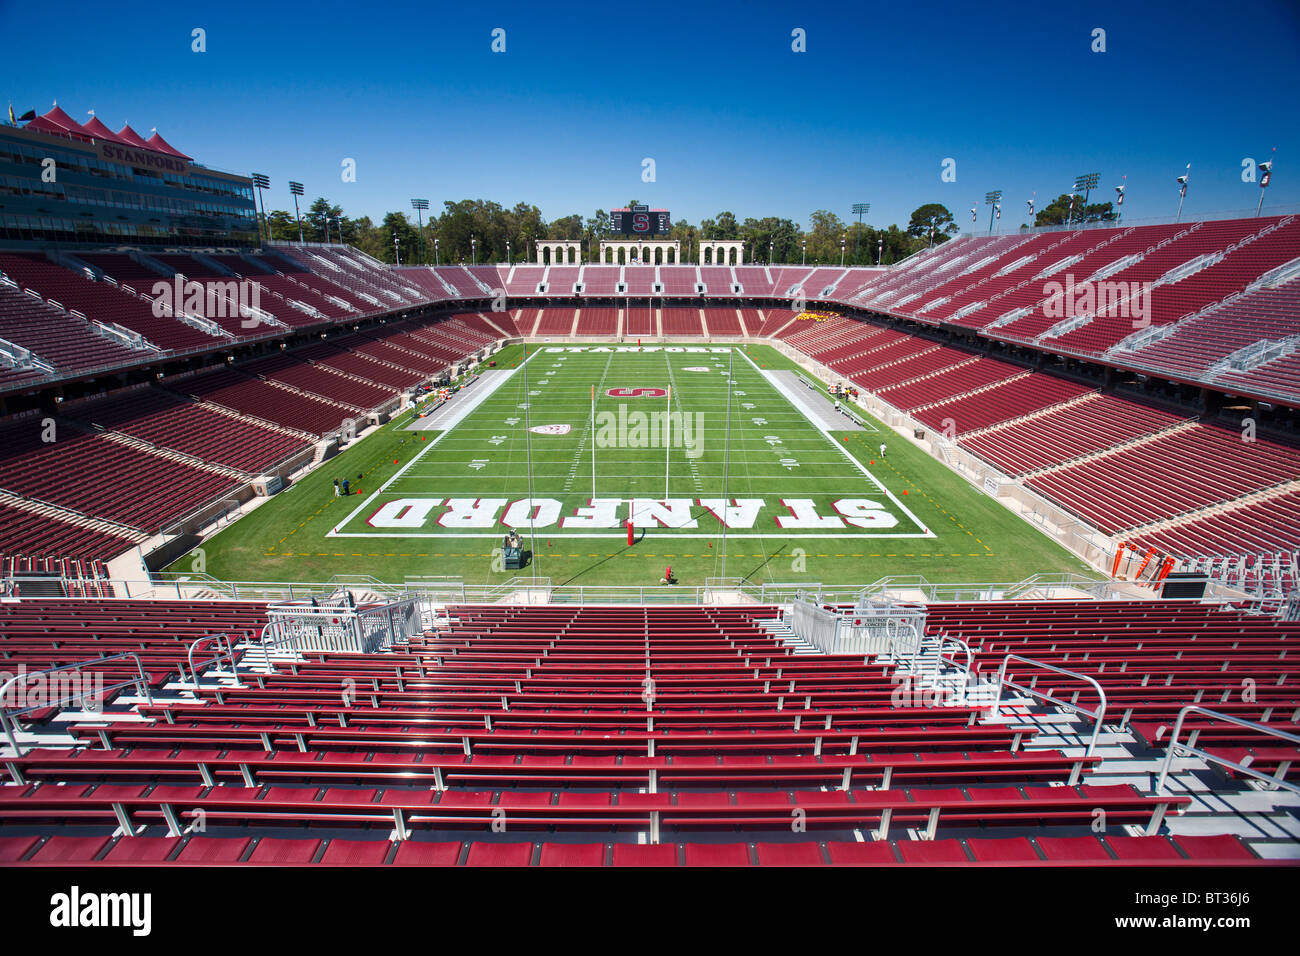 General view of the interior of Stanford Stadium, Stanford ...